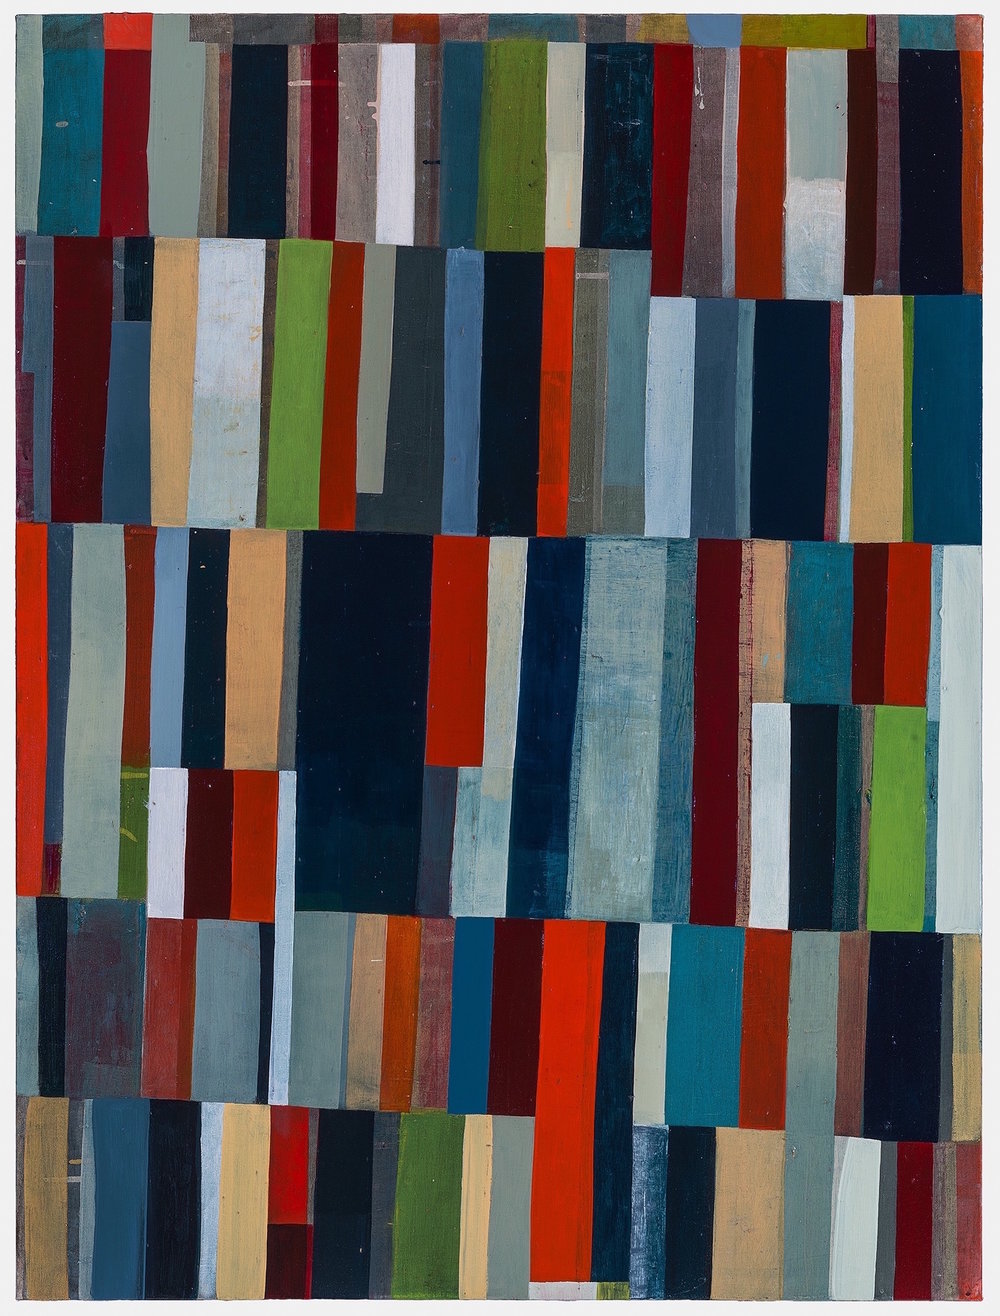 Current     BUILDING BLOCKS  featuring Michael Driggs, Laura Nugent, and Jeremy Rockwell   JAN 11 - FEB 24